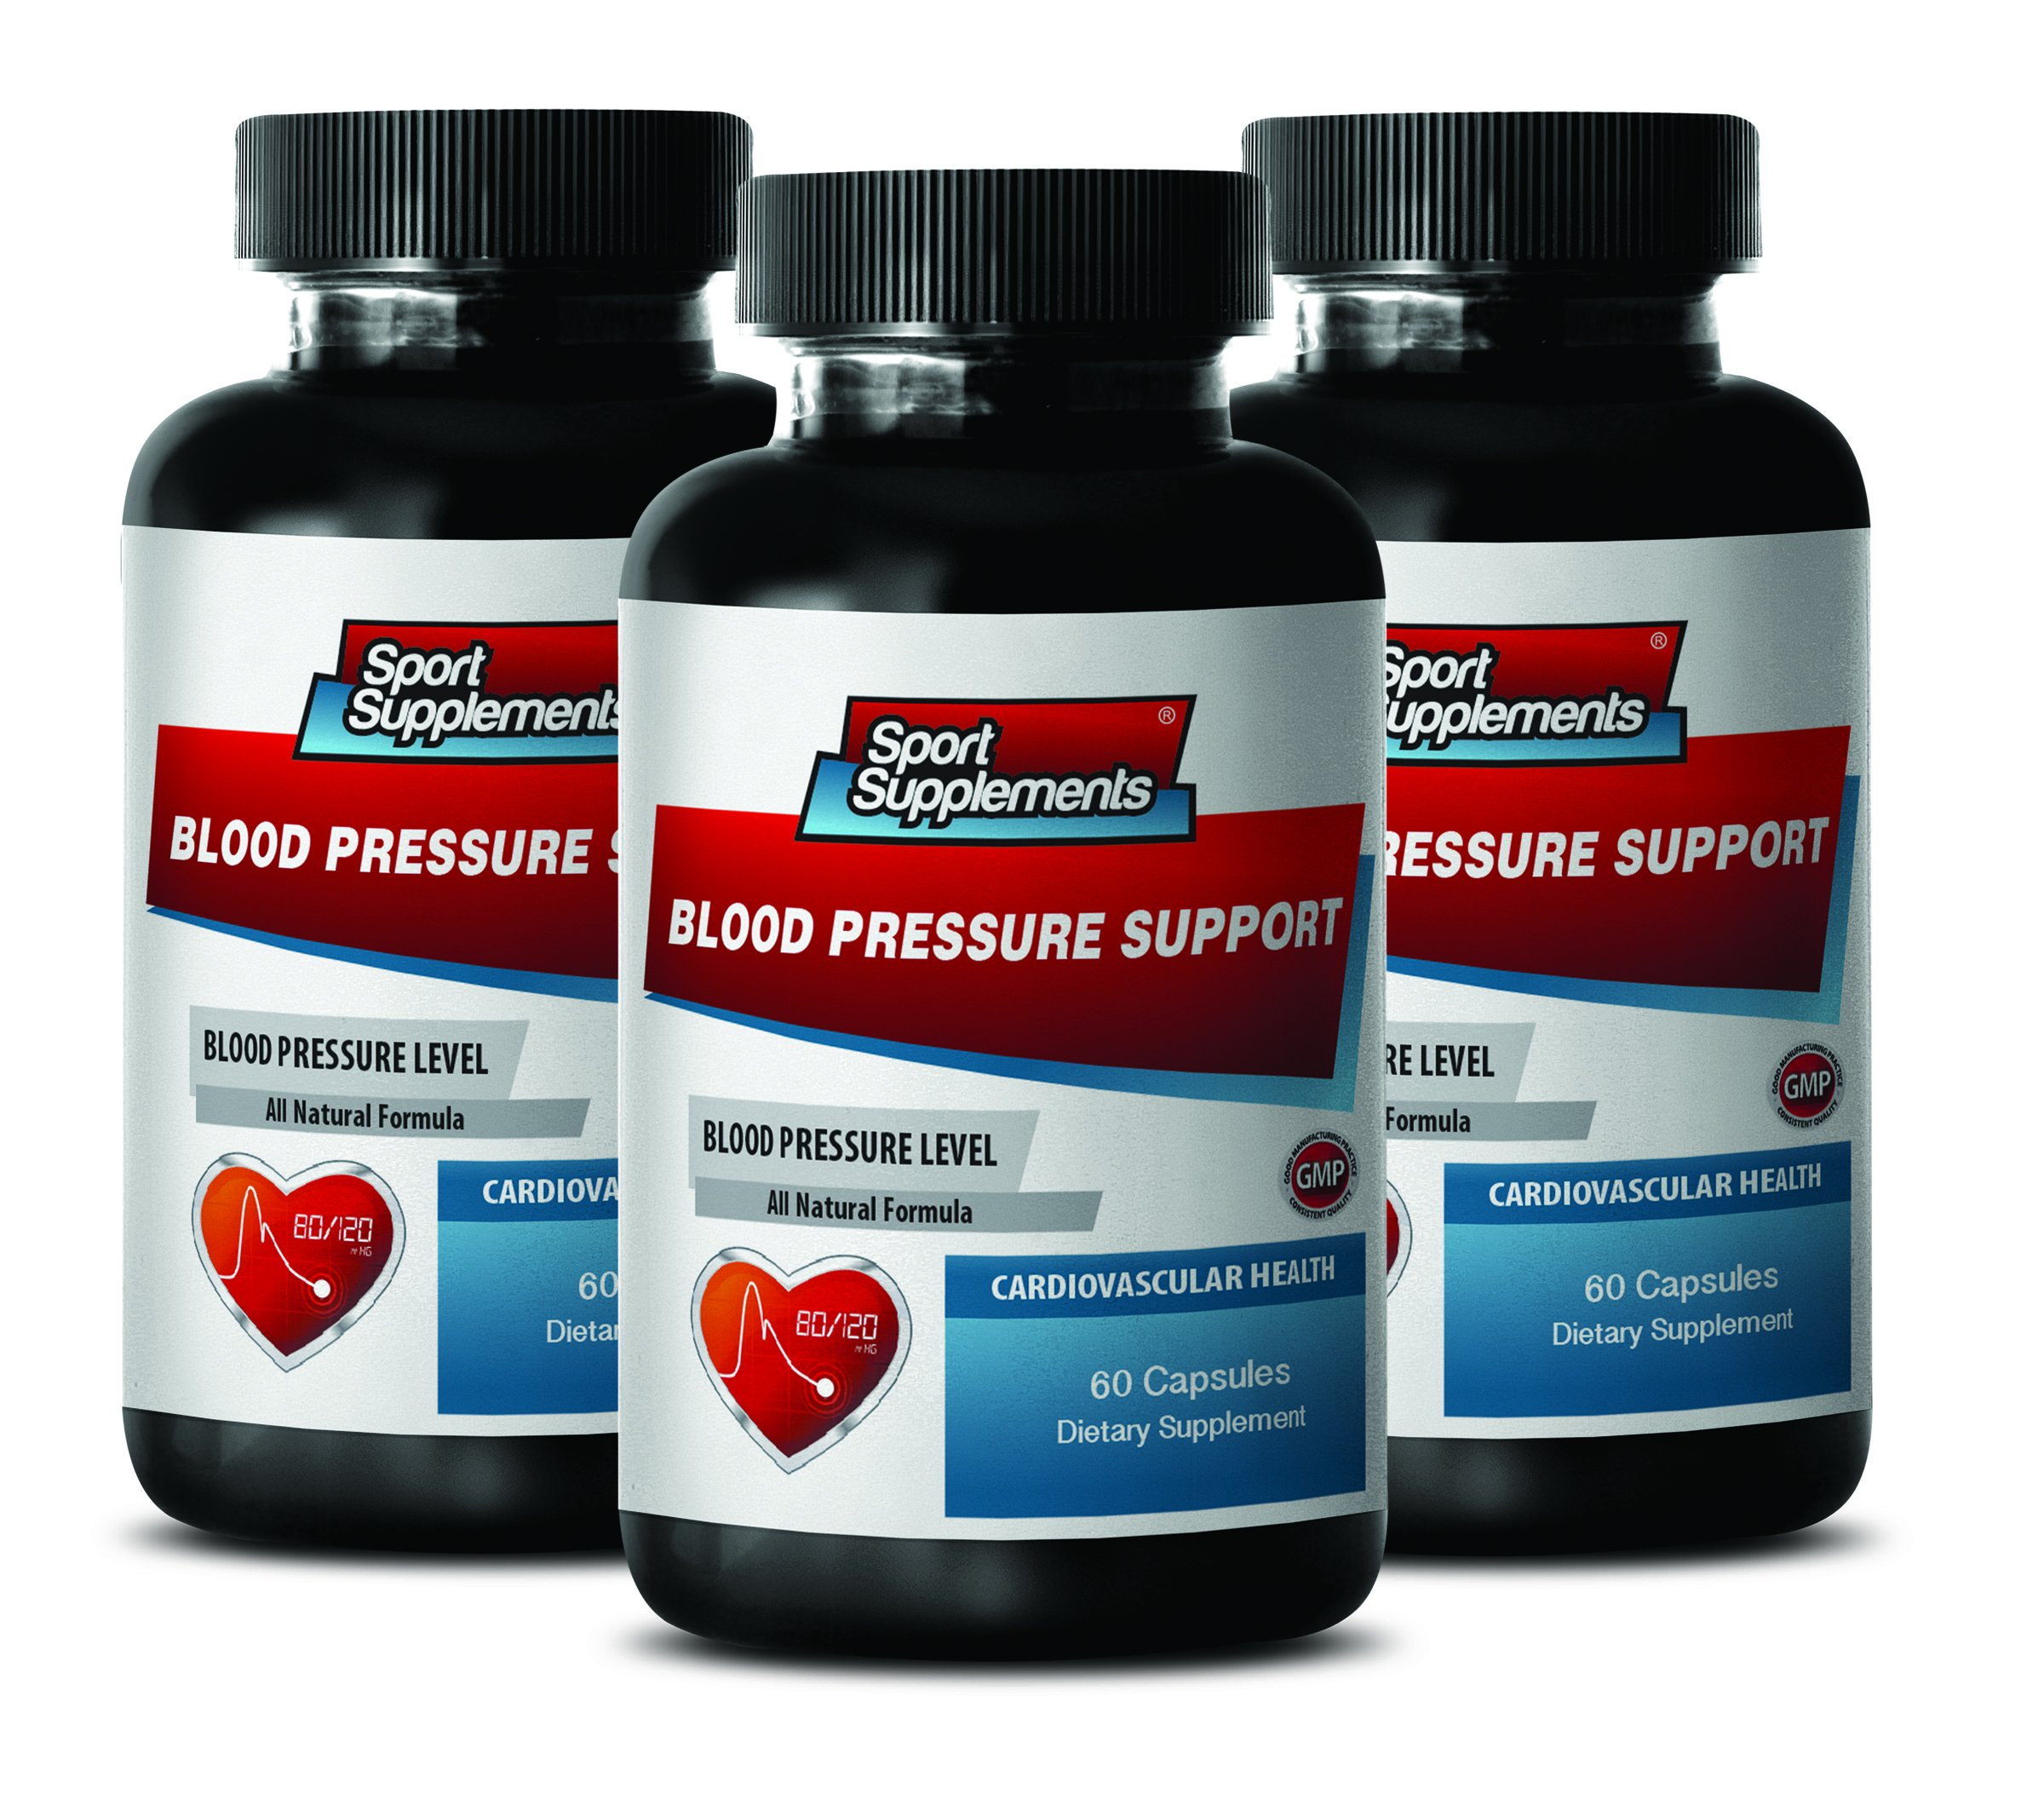 Energy Supplements for Women - Blood Pressure Support 690 MG - Cardiovascular Health - Weight Management - 3 Bottles (180 Capsules)